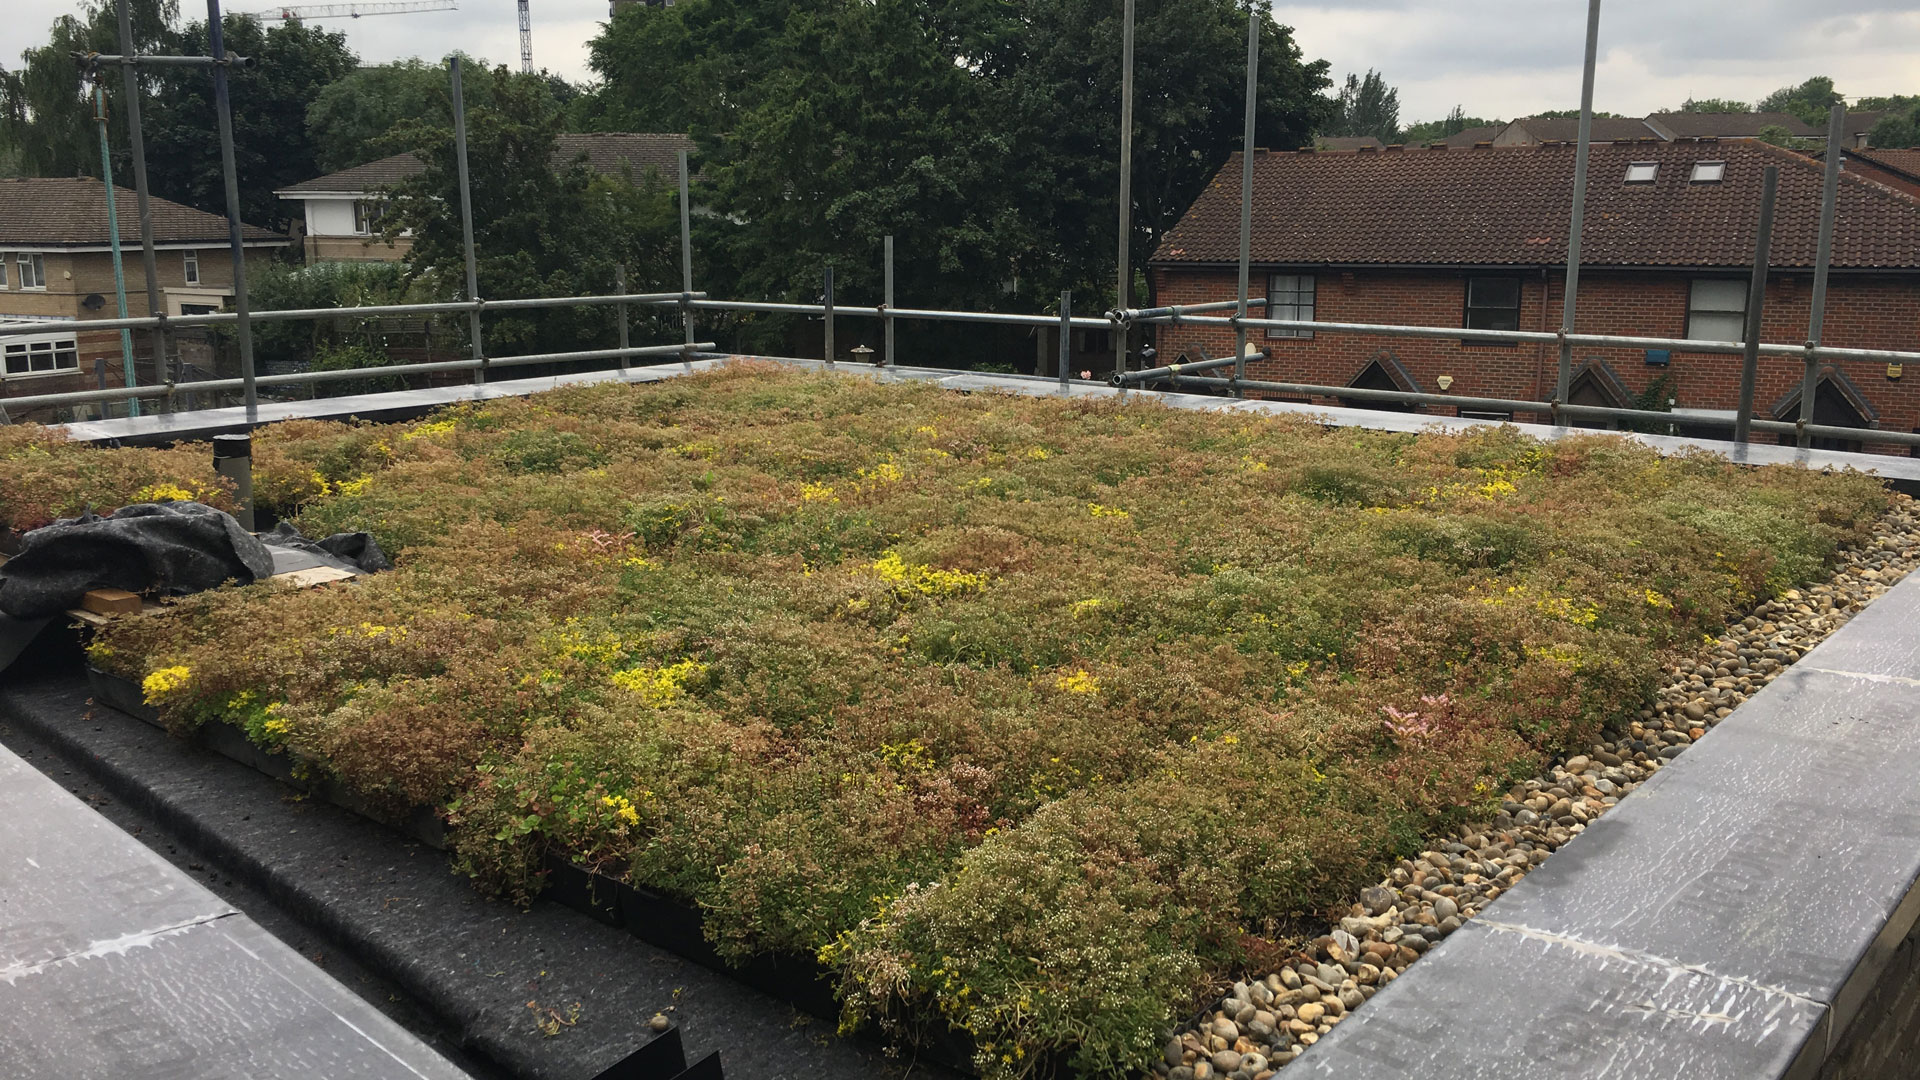 Green Roof Project, St Pancras Way, London – 2019